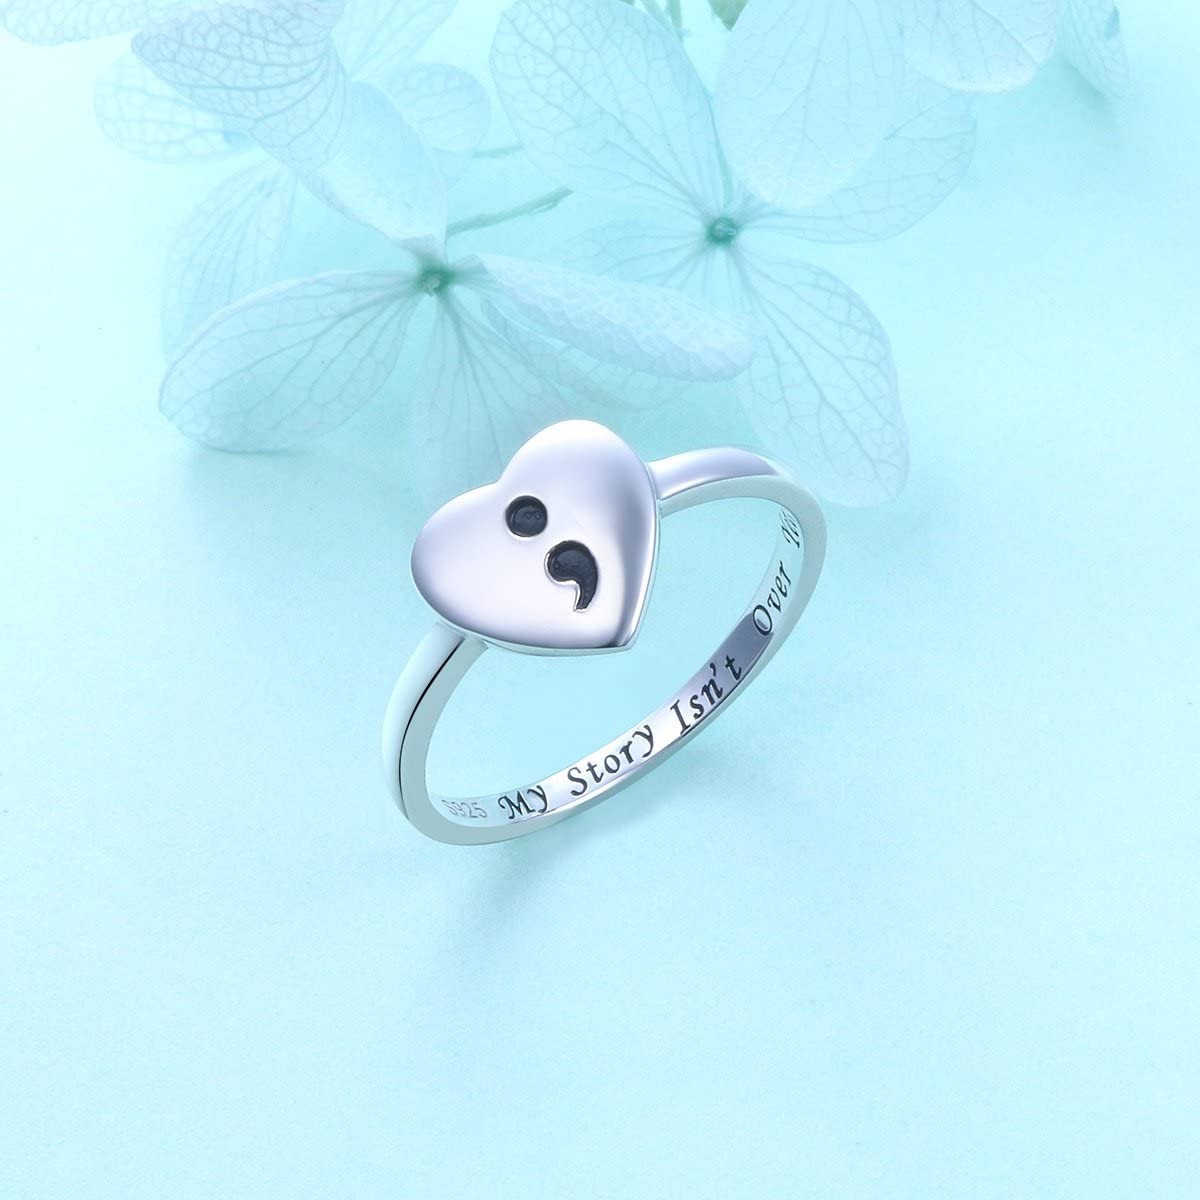 DAOCHONG S925 Sterling Silver My Story Isnt Over Yet Unadjustable Heart Semicolon Ring This Too Shall Pass Semicolon Ring